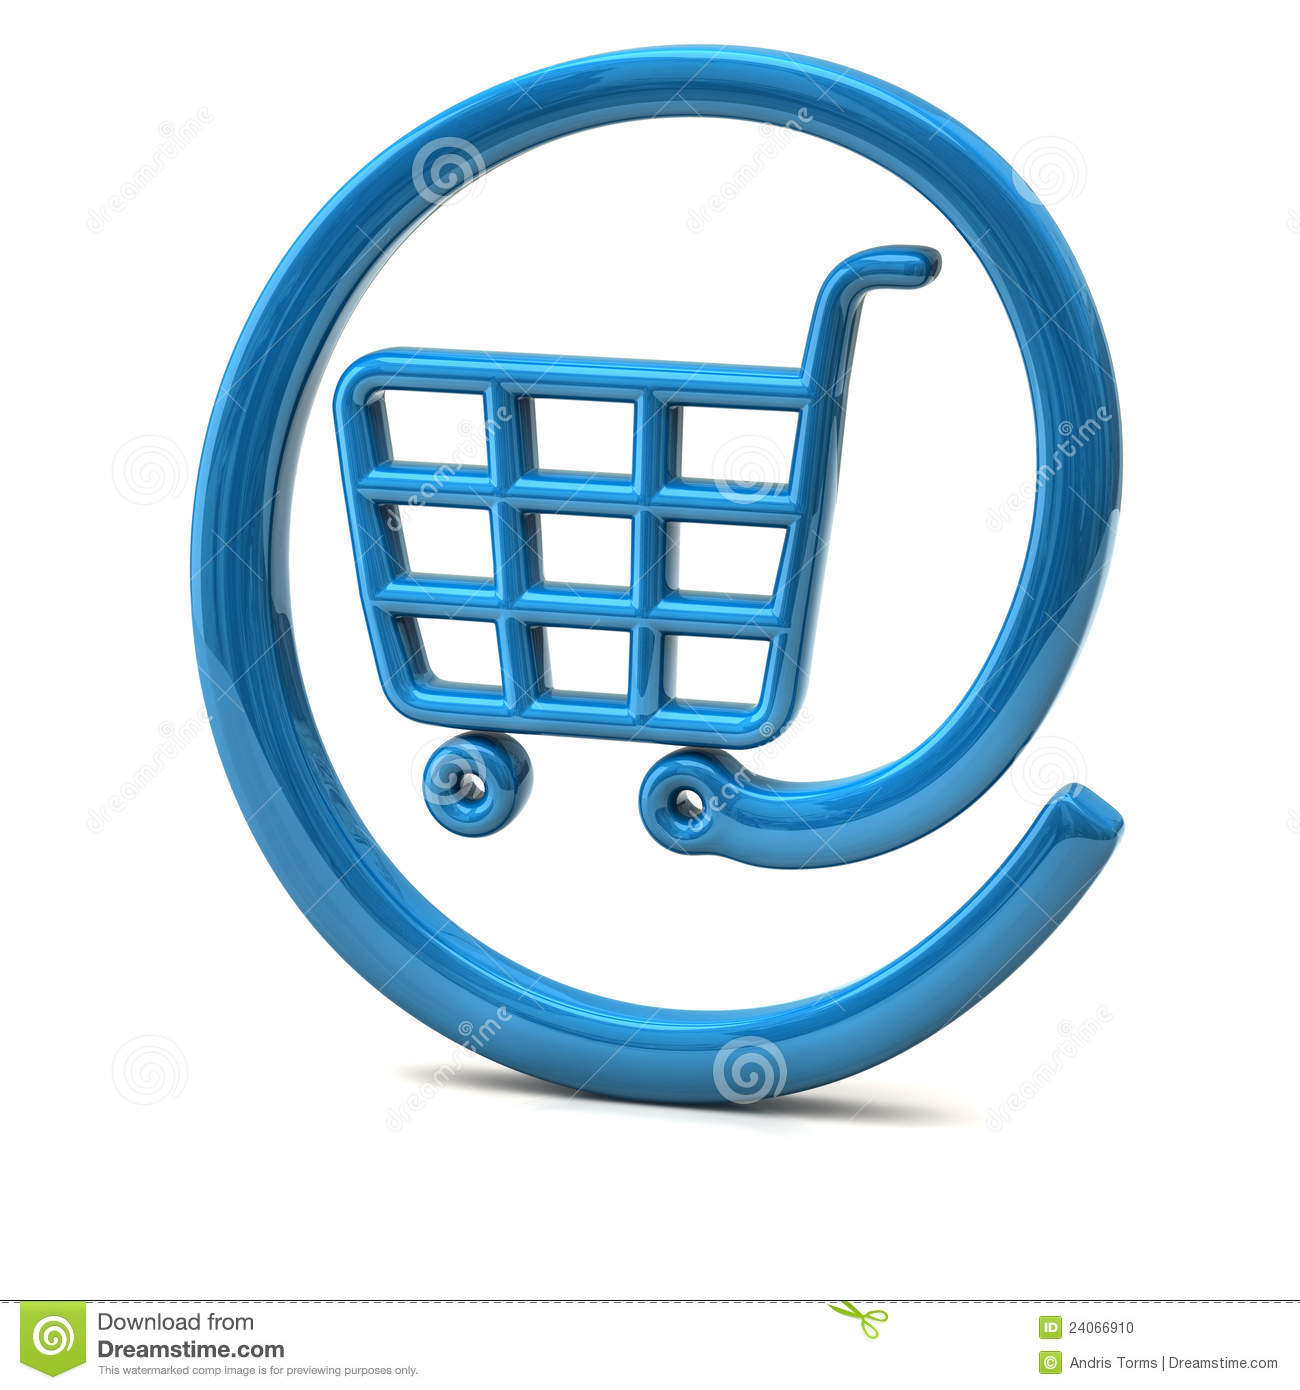 On line shopping icon 3d stock illustration illustration of check on line shopping icon 3d biocorpaavc